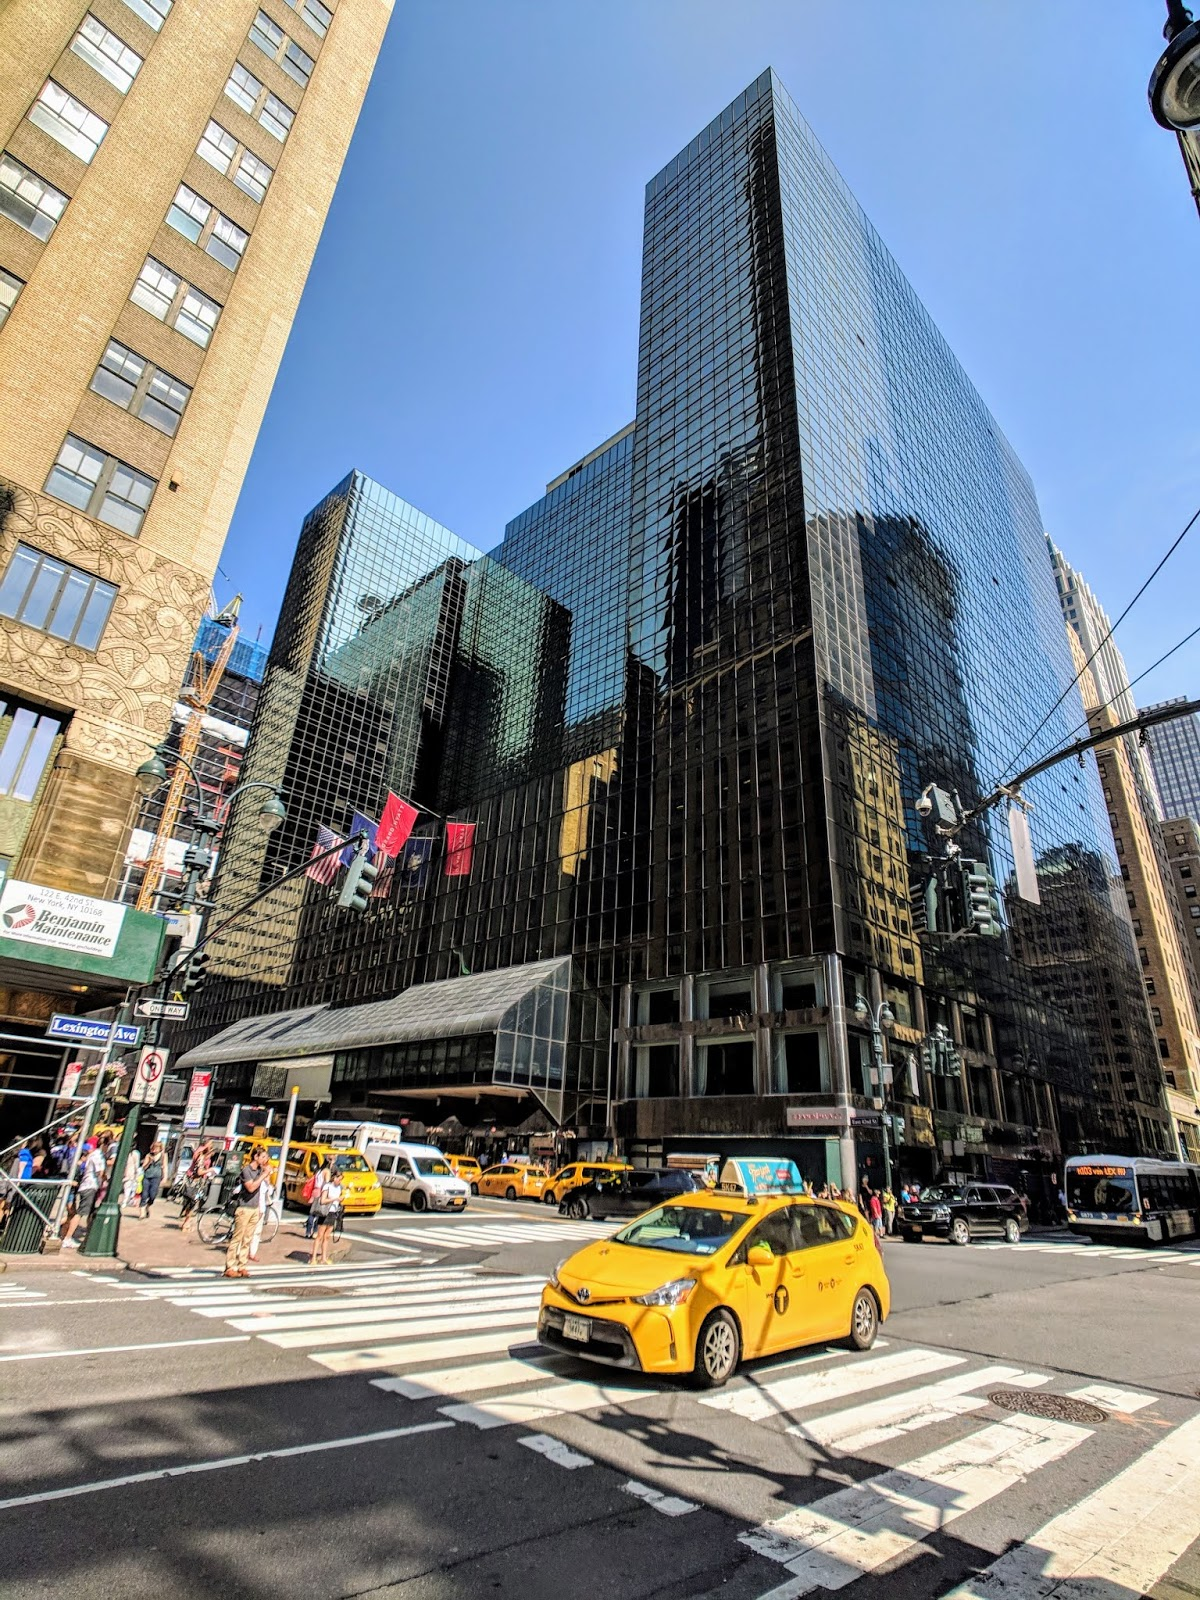 New York Hotel Voucher Code Printable Mobile  2020